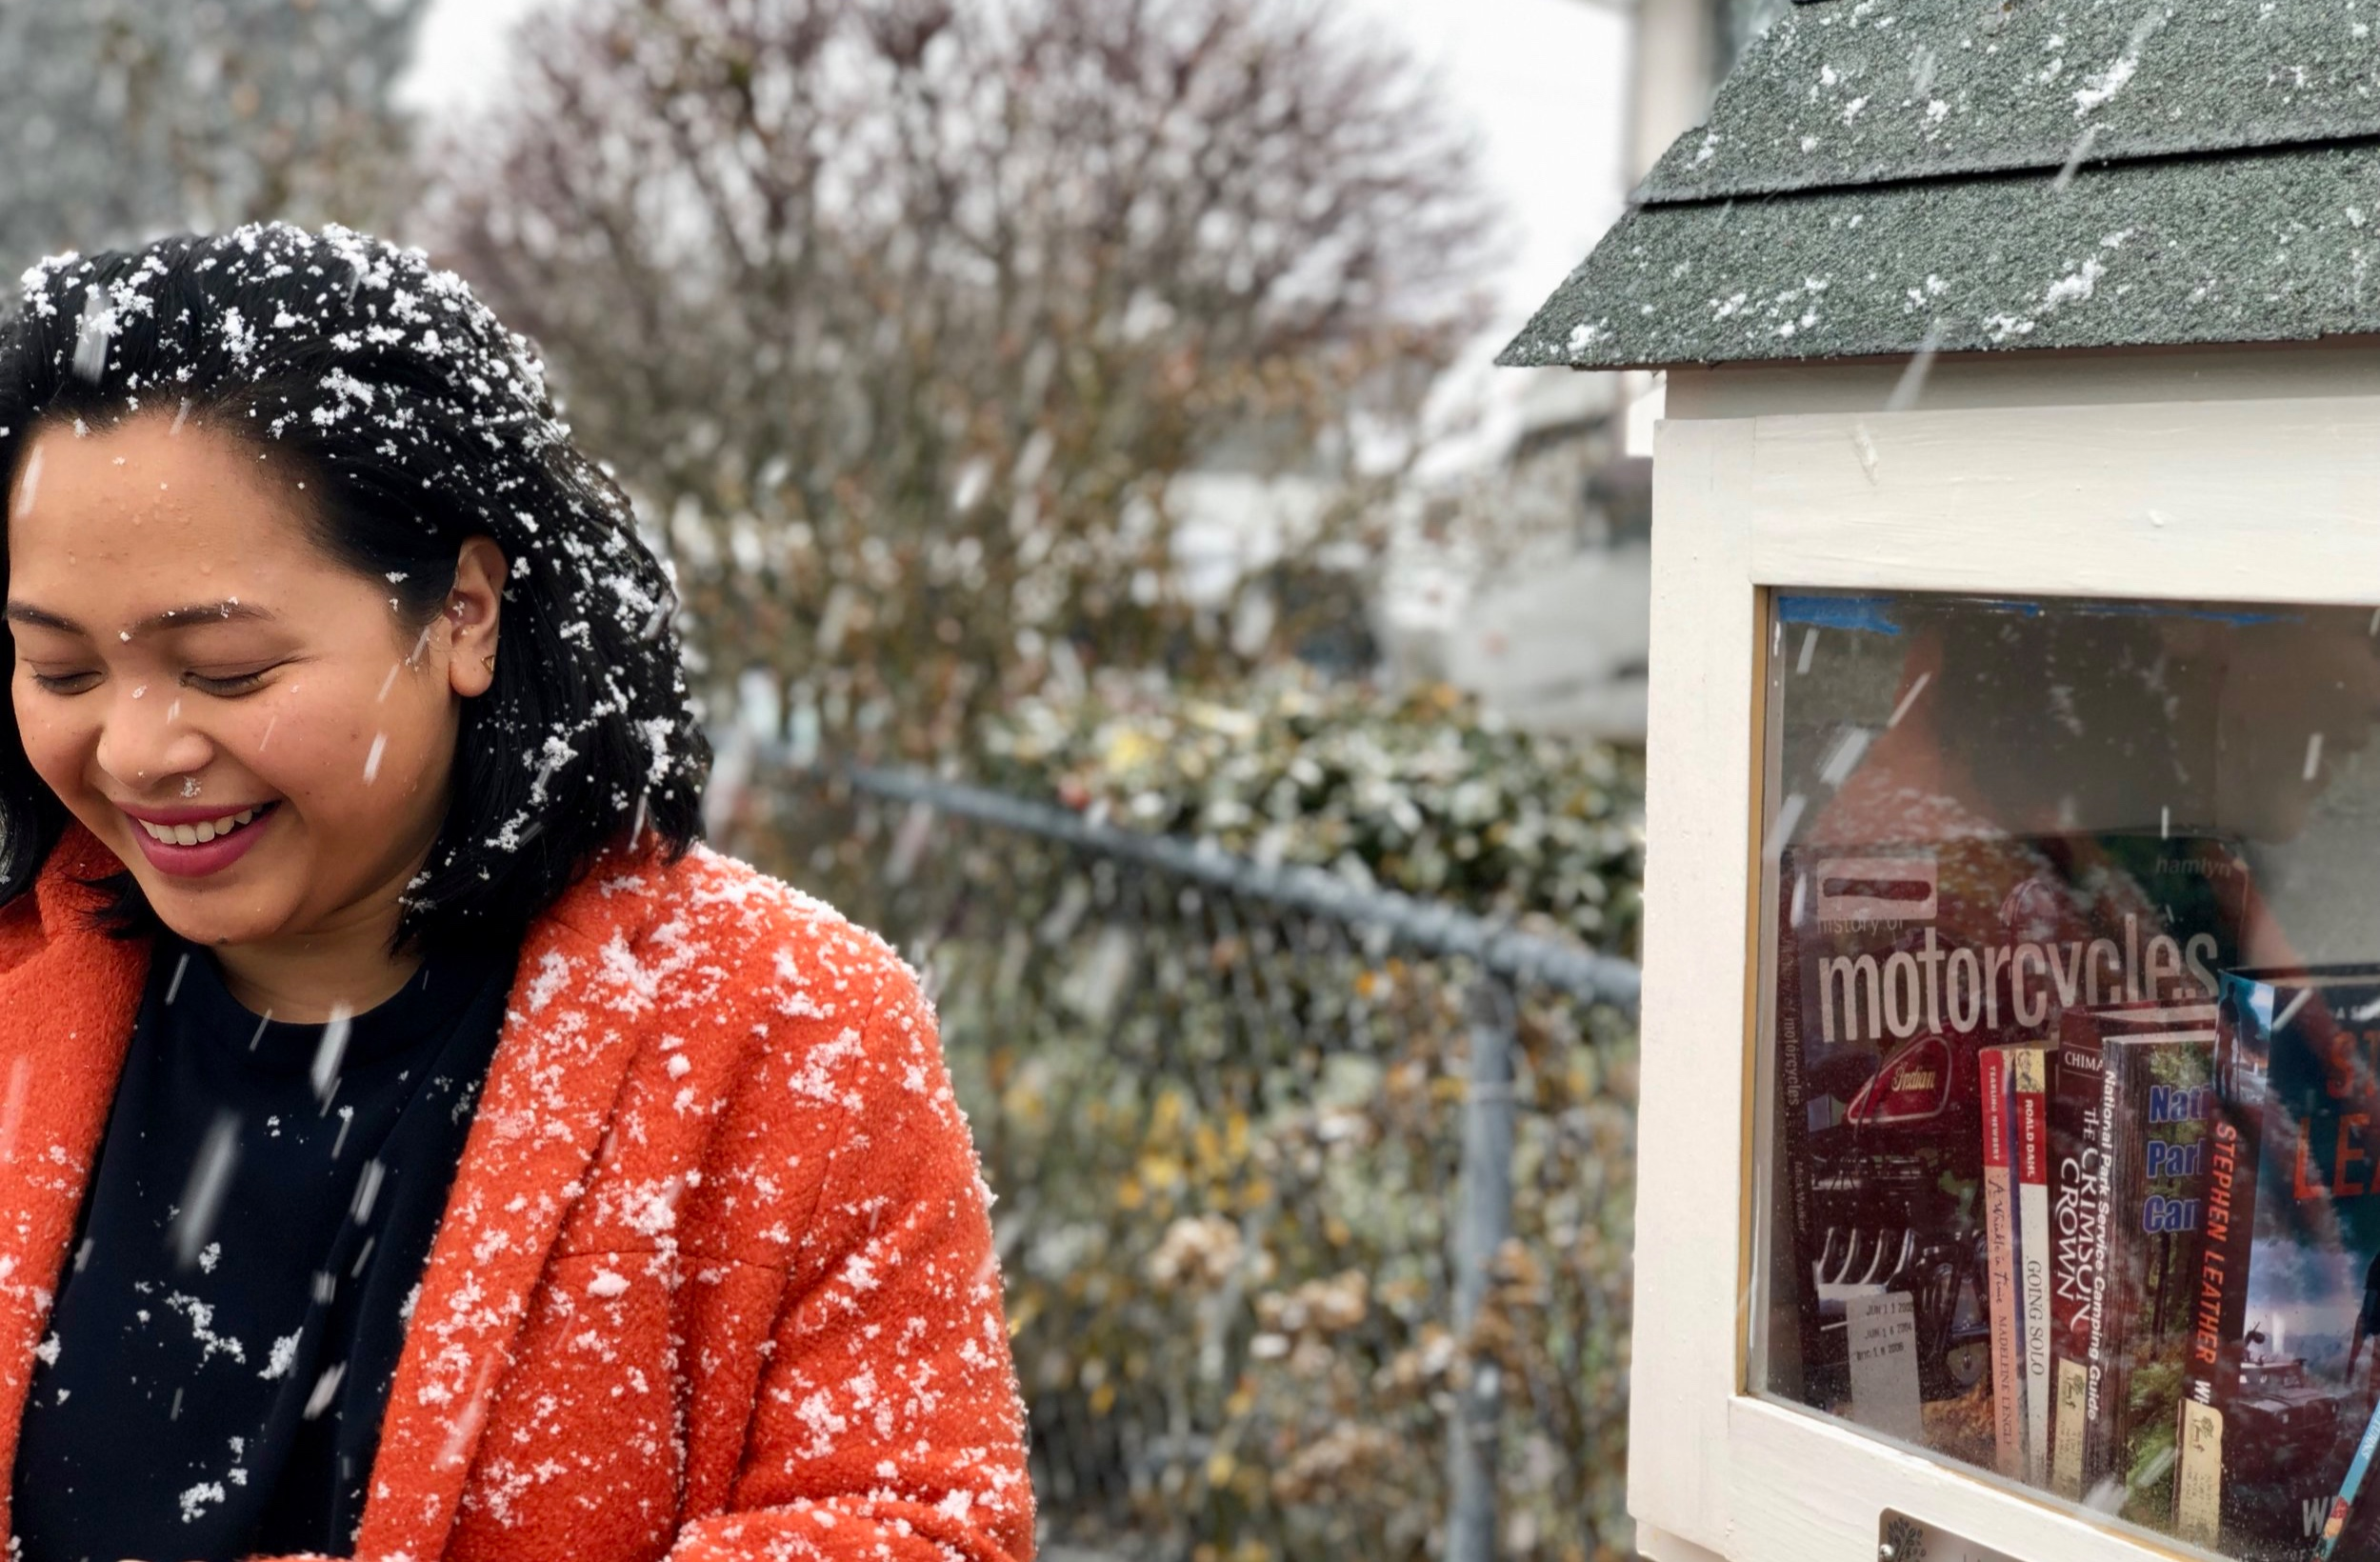 Meet Melo, proud Eastside Tacoma resident and steward of the Hogan Family Community Library. She was such a good sport for this wintry photoshoot (and looks pretty dang cute in the snow)!